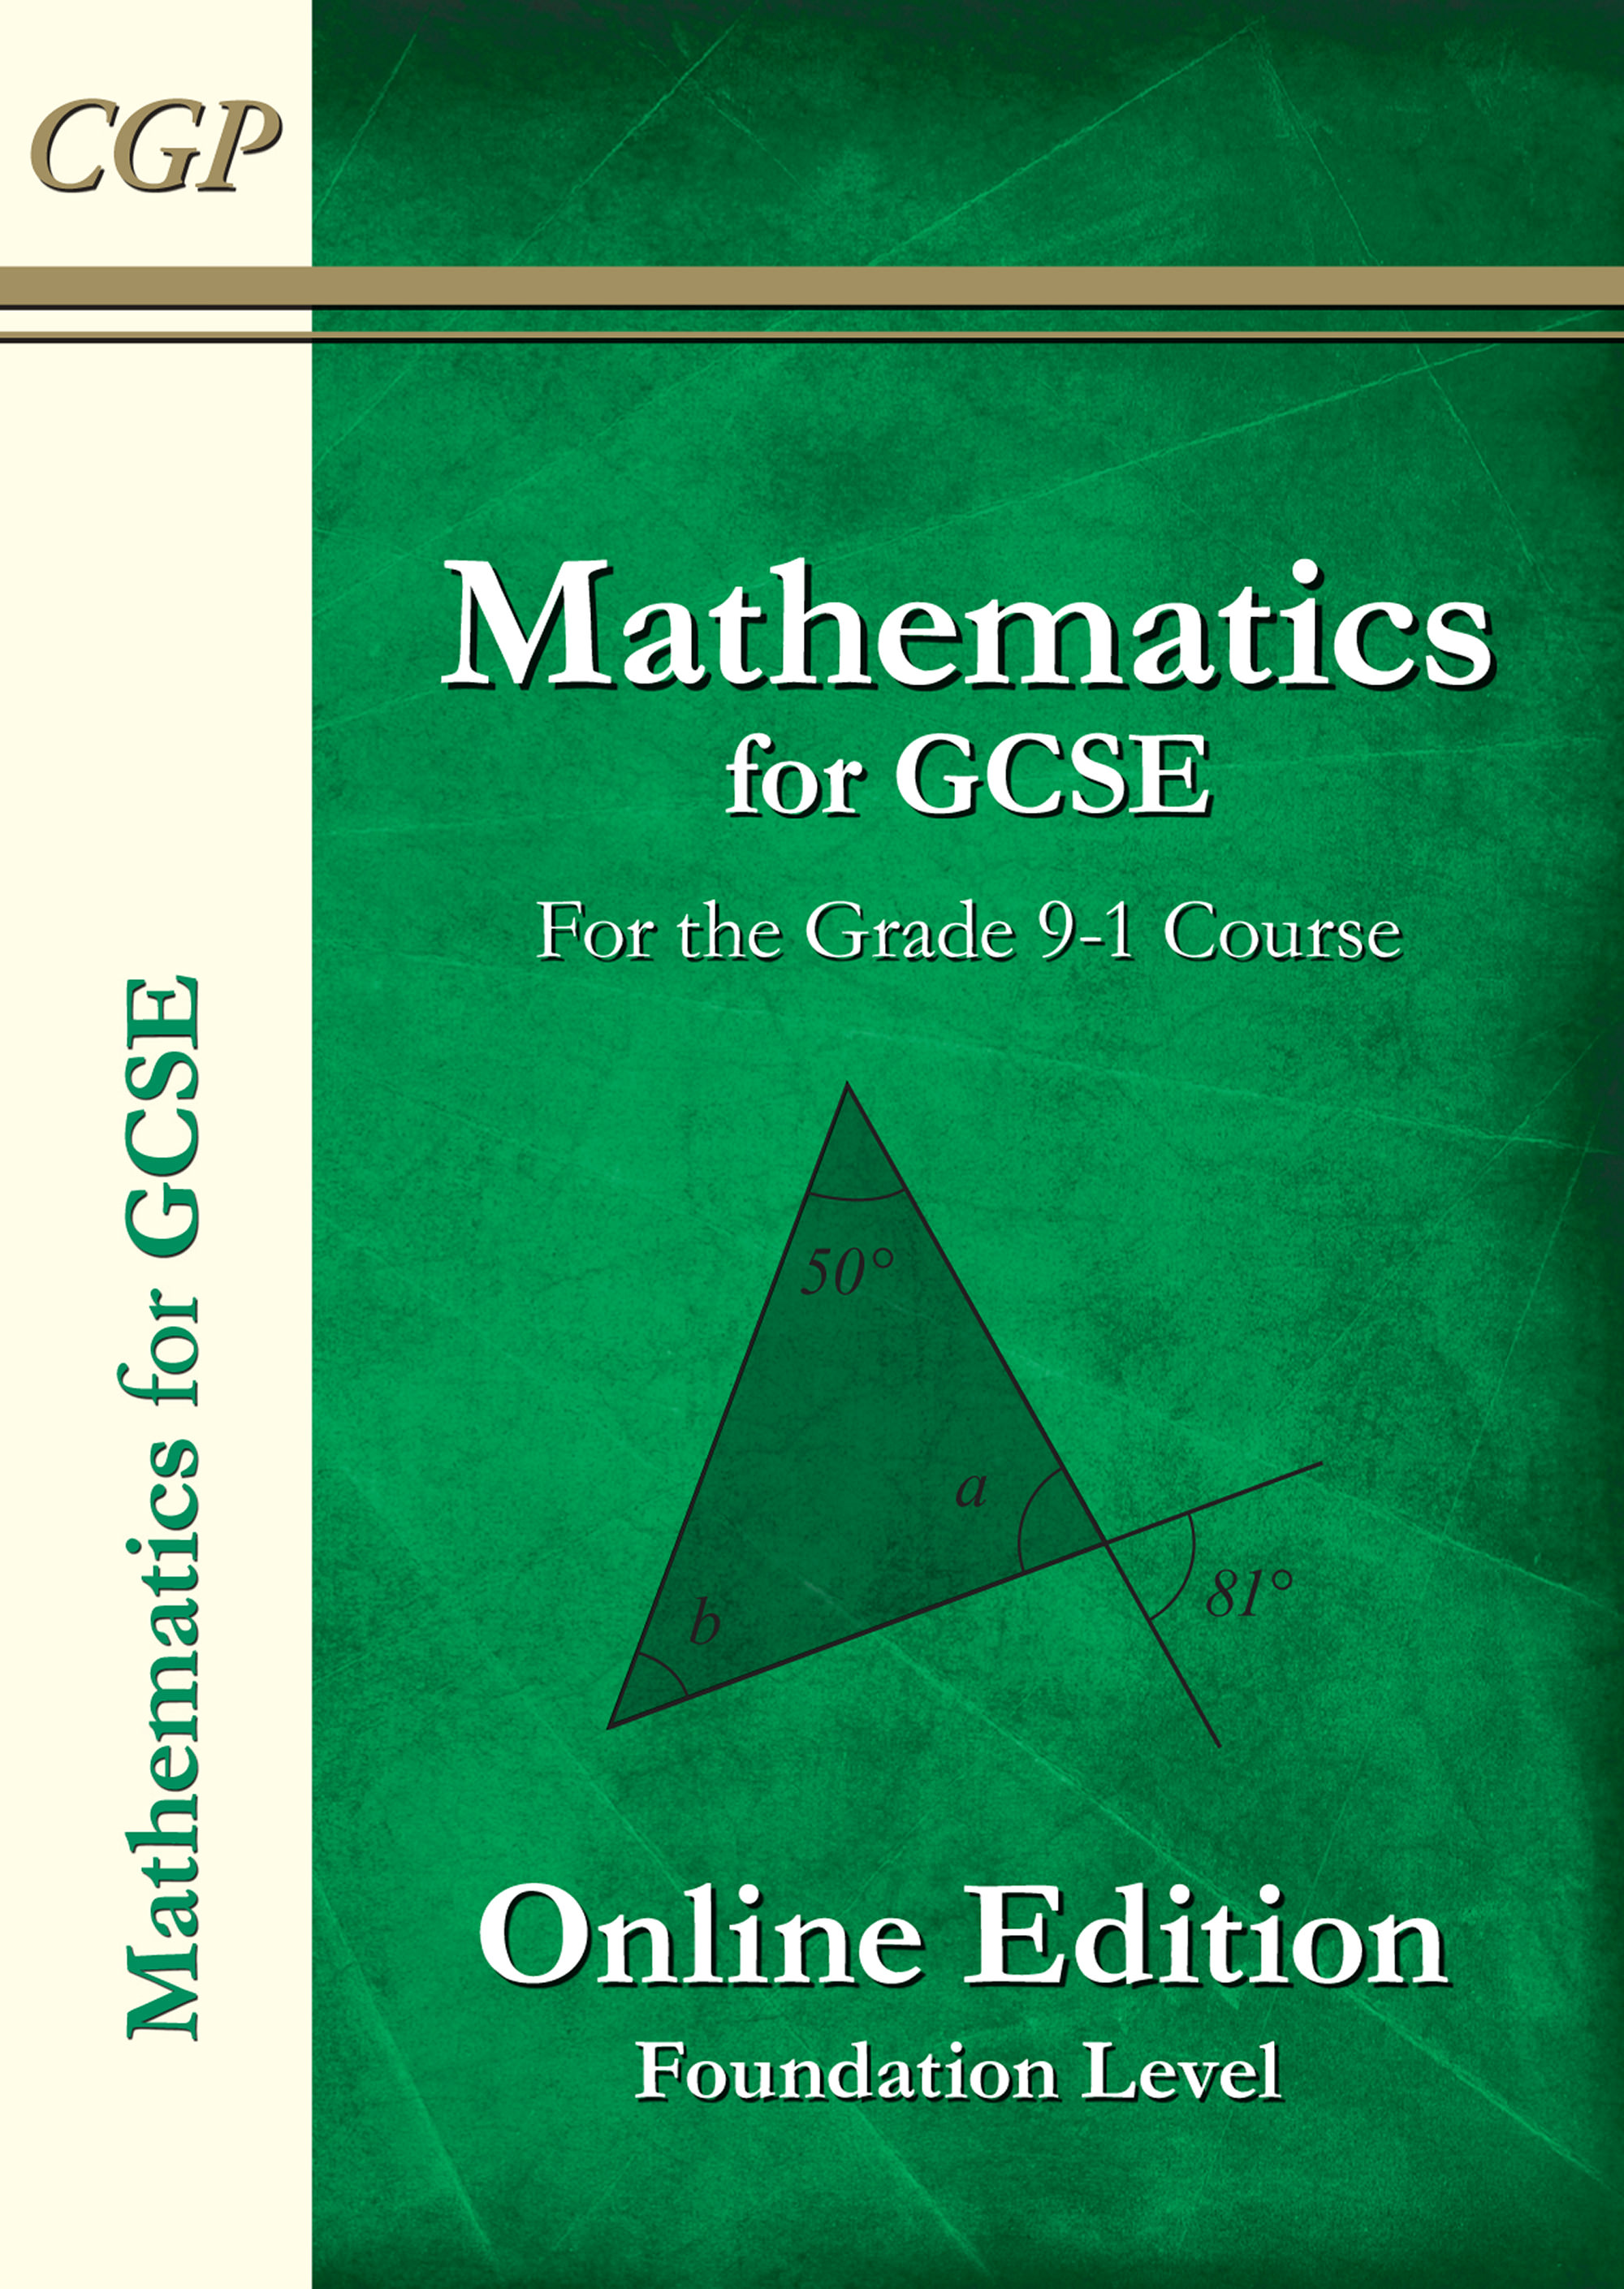 MFN42D - New Maths for GCSE Textbook: Online Edition with answers - Foundation (for the Grade 9-1 Co